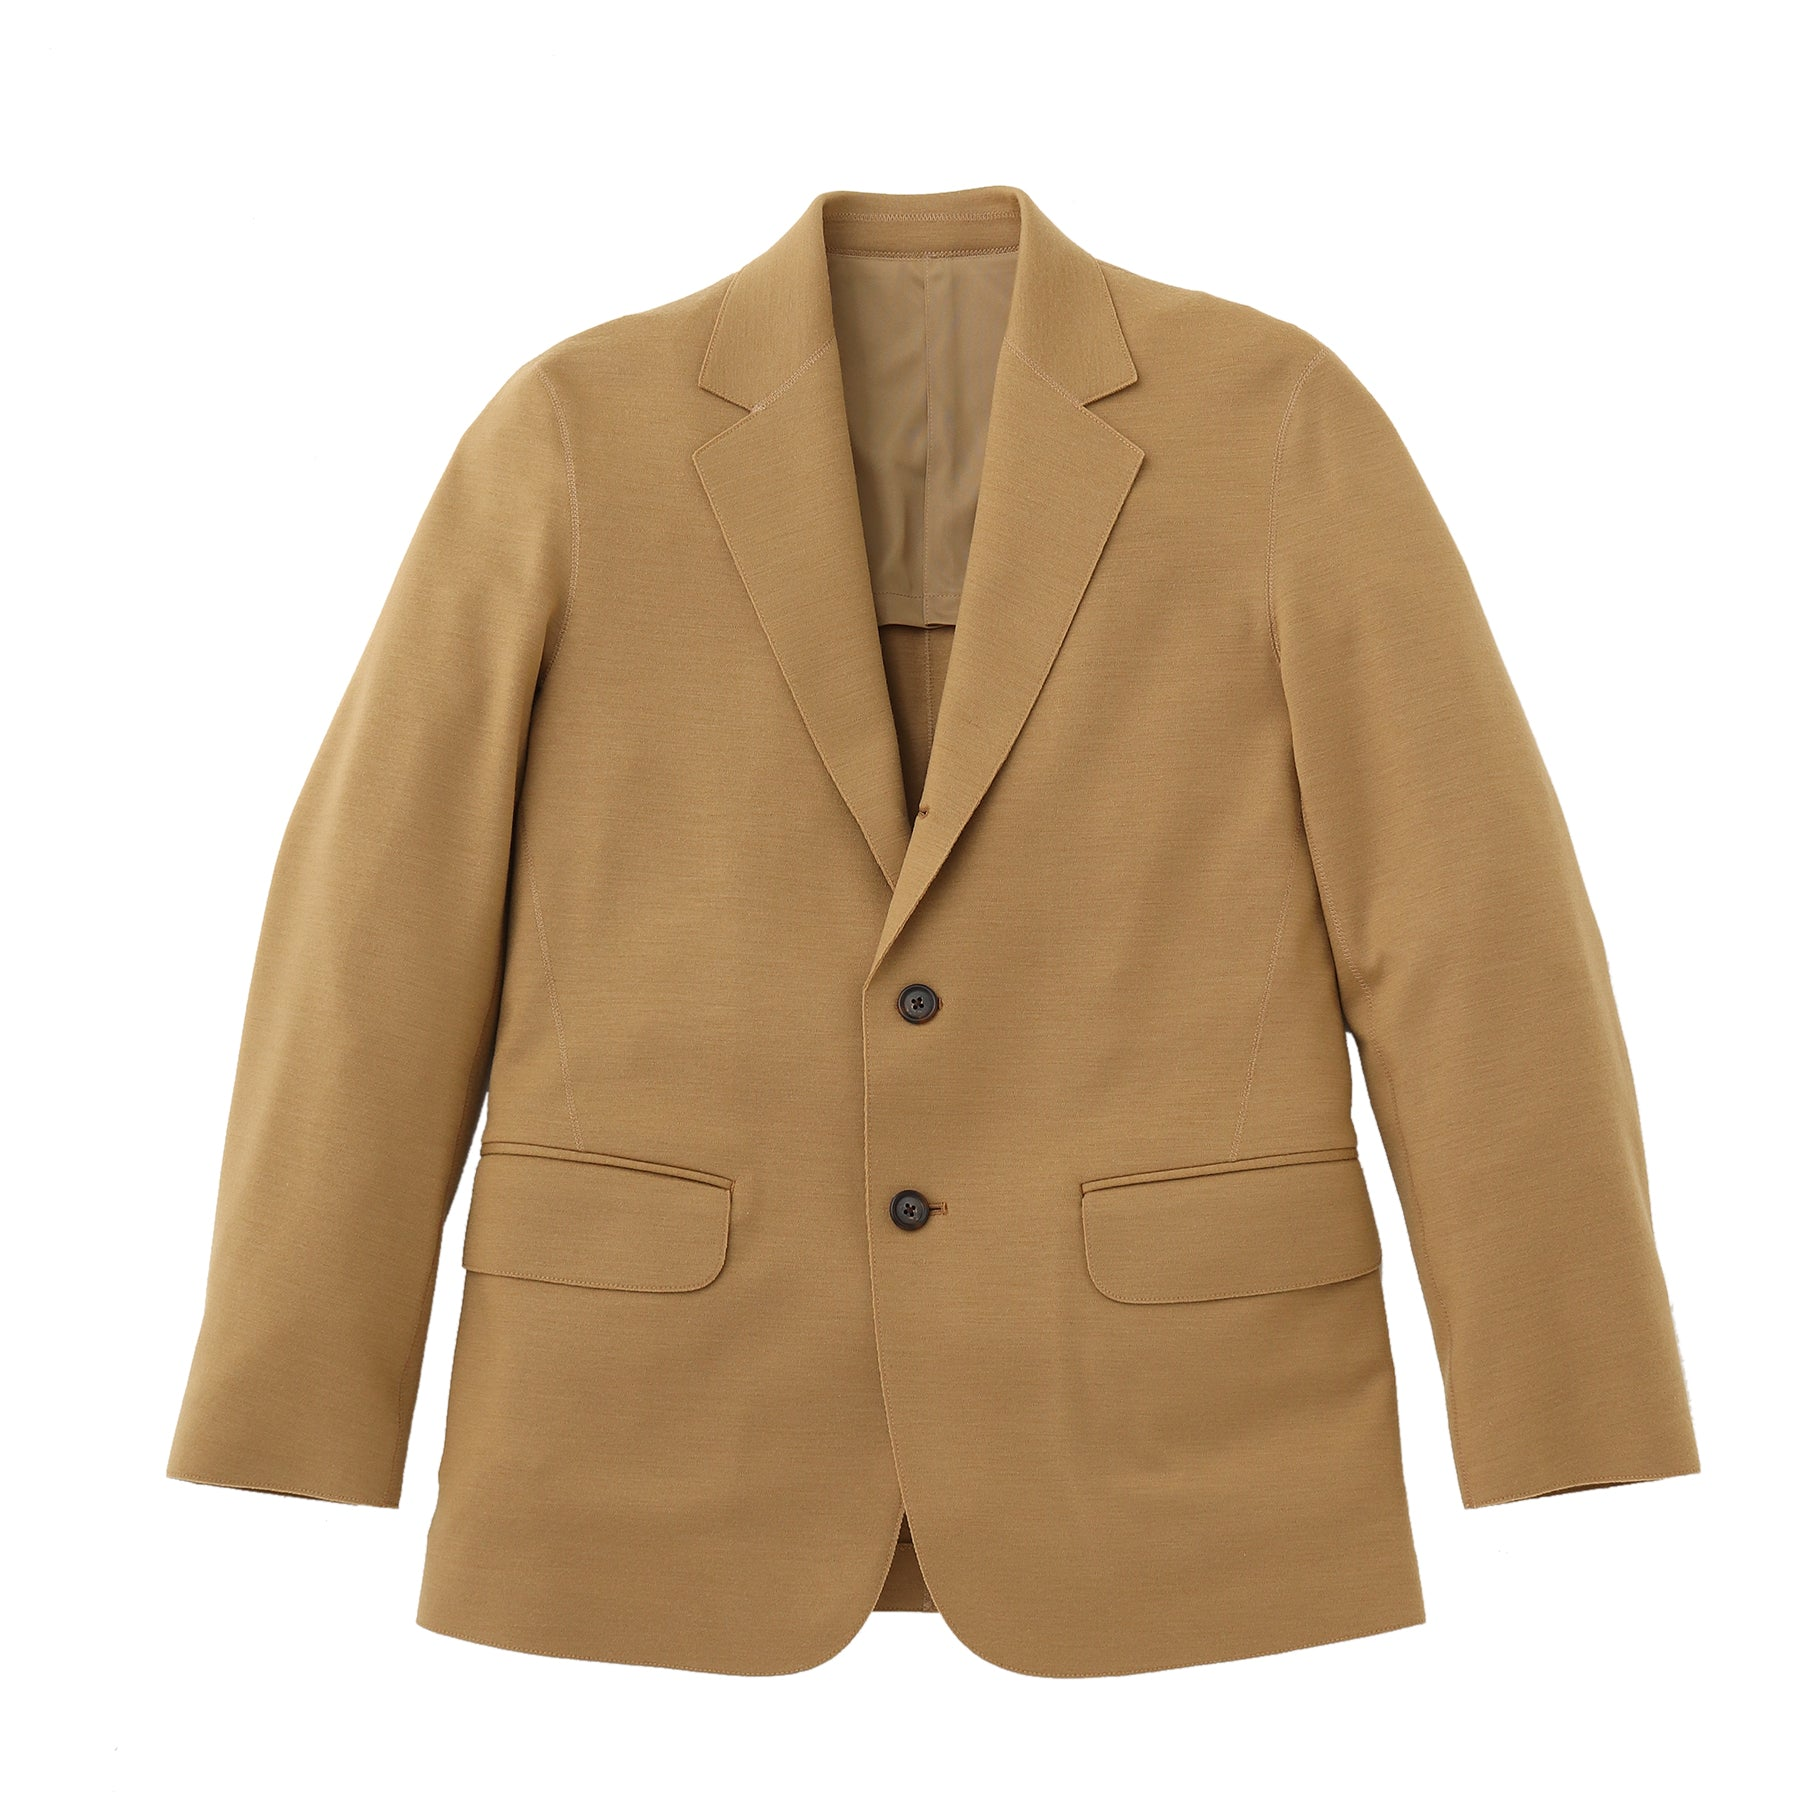 TPS_Middle Smooth Jacket<br>Col.Camel